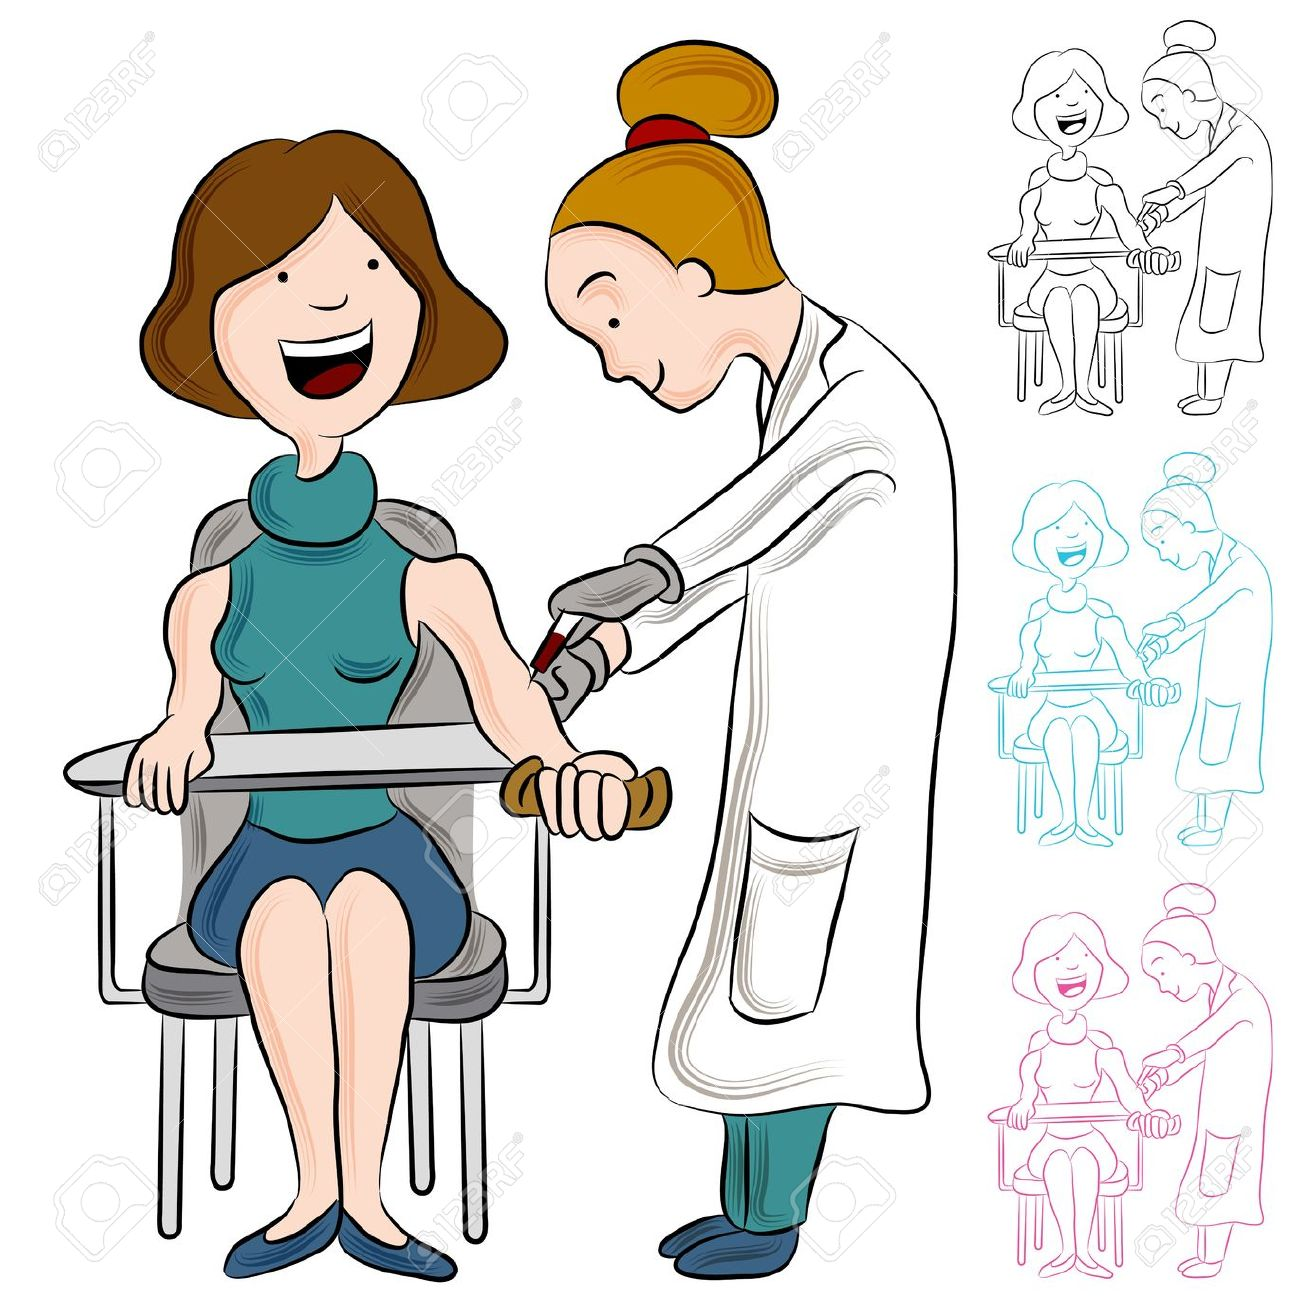 Clipart blood work. Clipartfest woman taking a